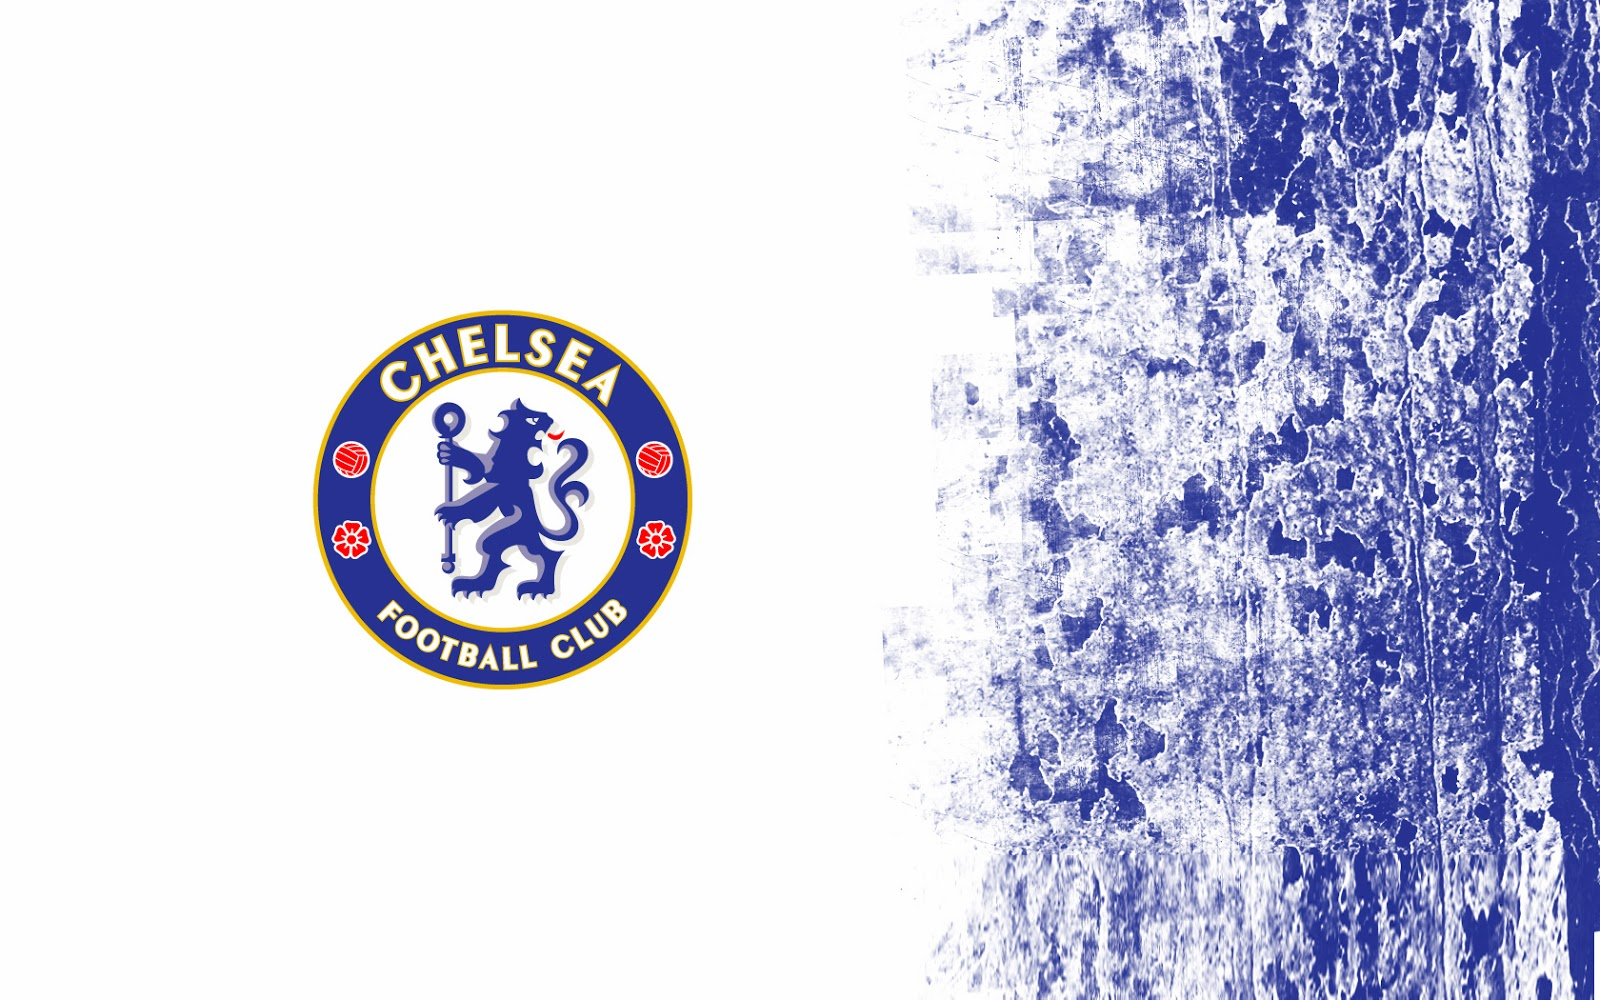 Chelsea Fc Wallpapers   beautiful desktop wallpapers 2014 1600x1000